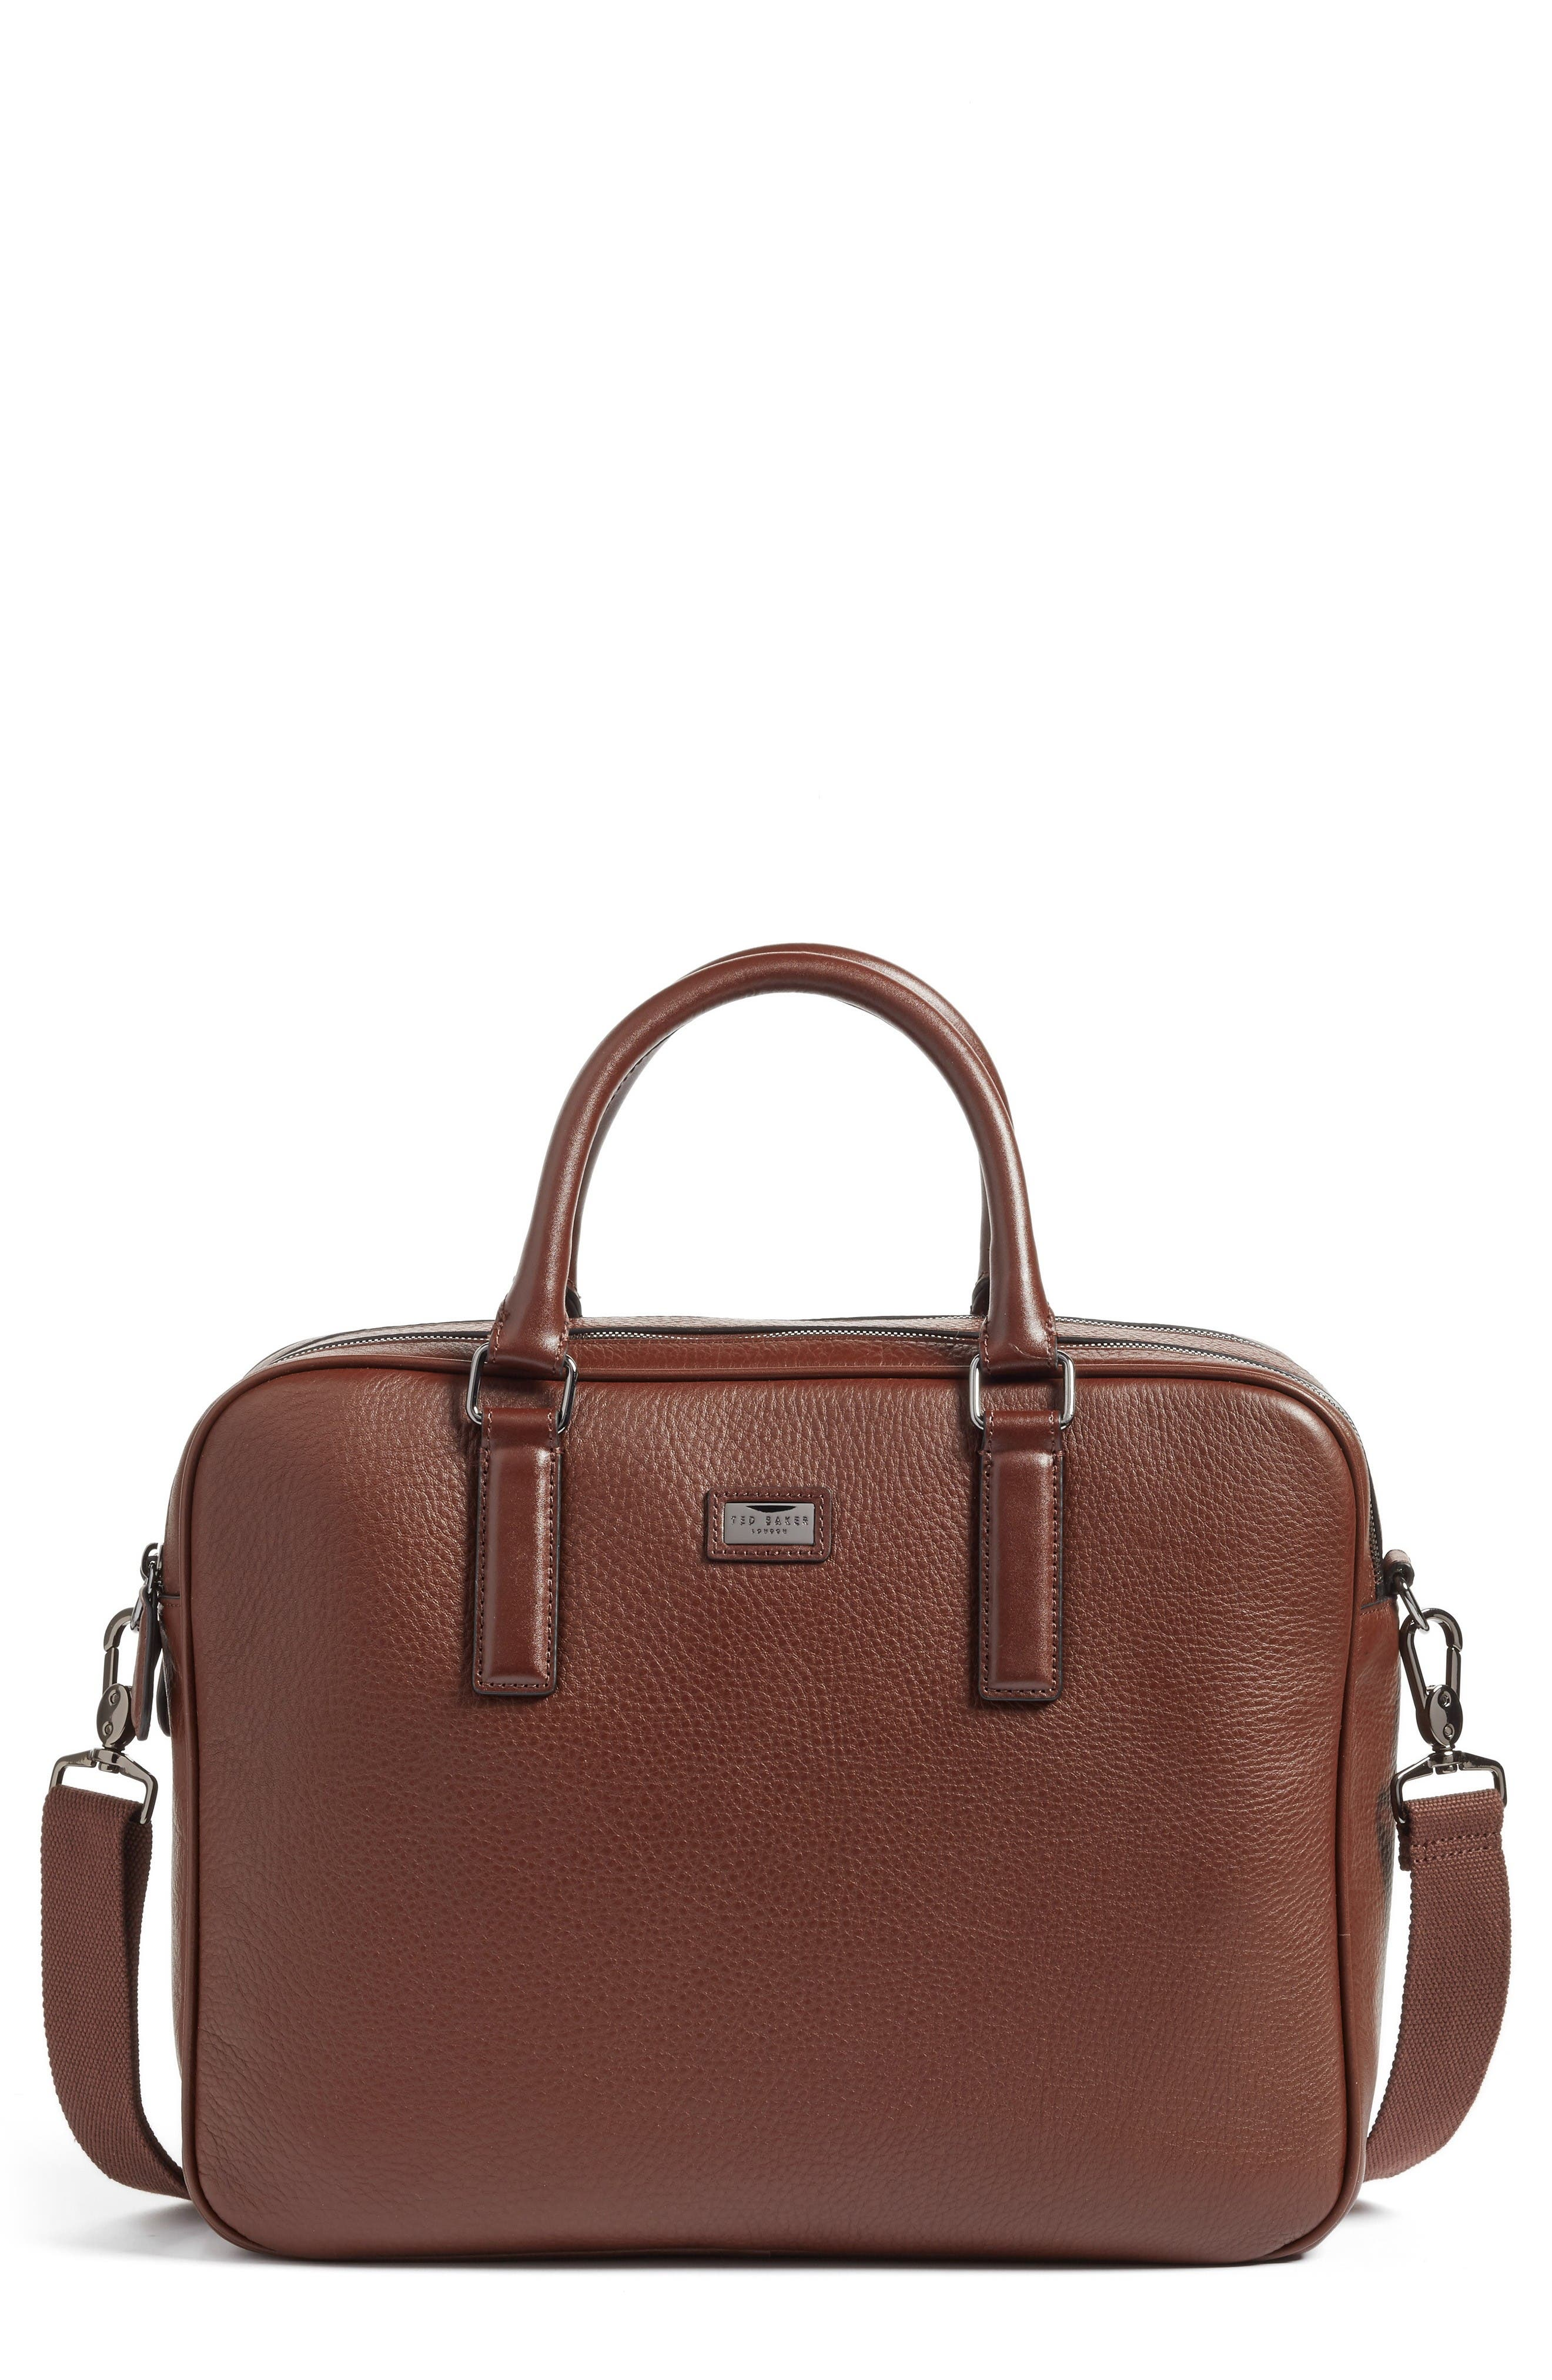 Main Image - Ted Baker London Leather Document Bag